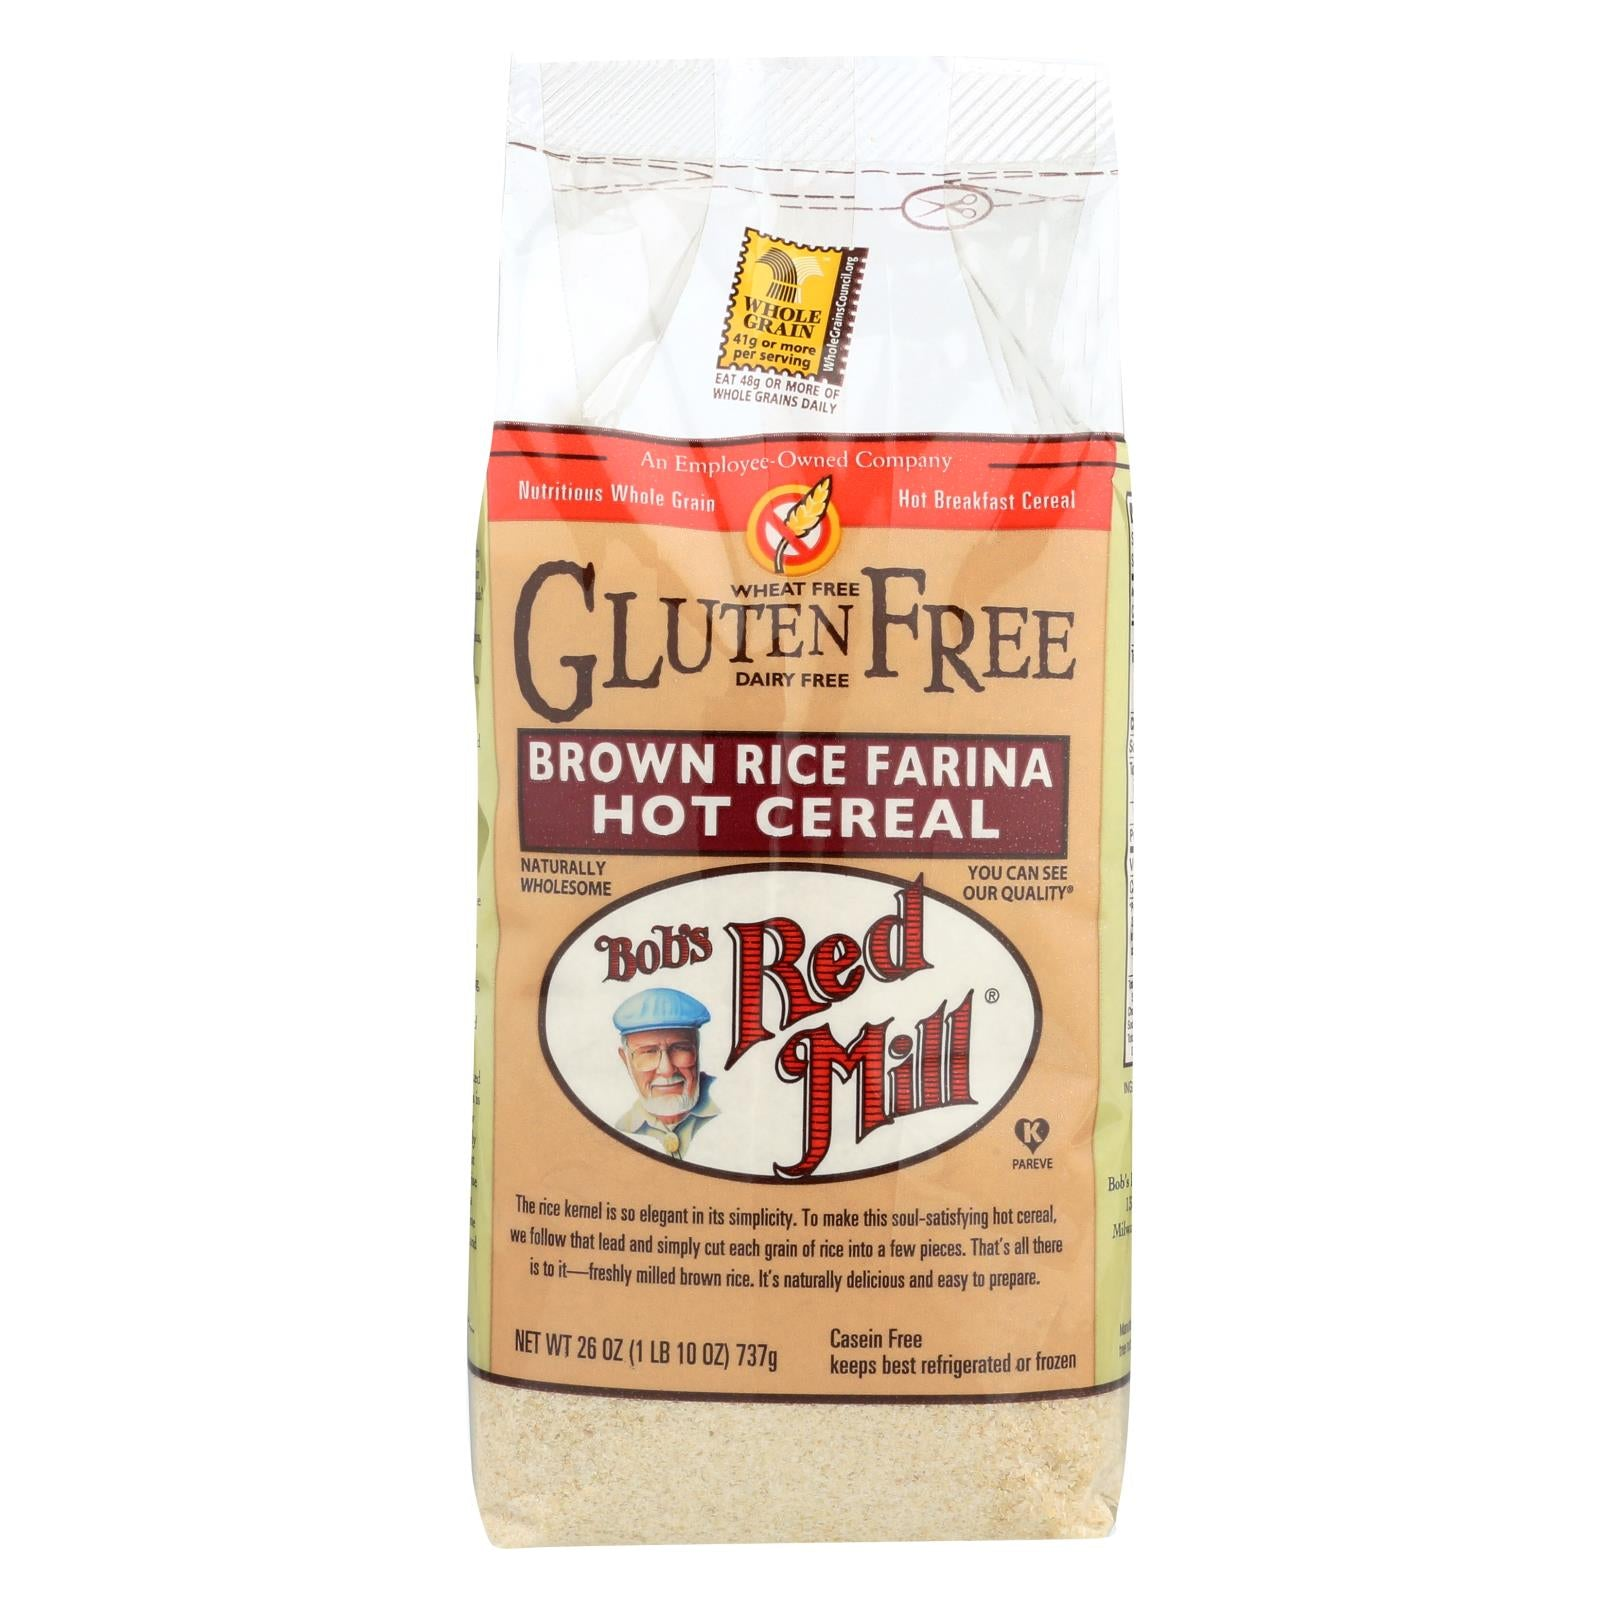 Bob's Red Mill Creamy Brown Rice Farina Hot Cereal - 26 Oz - Case Of 4 HG0707166